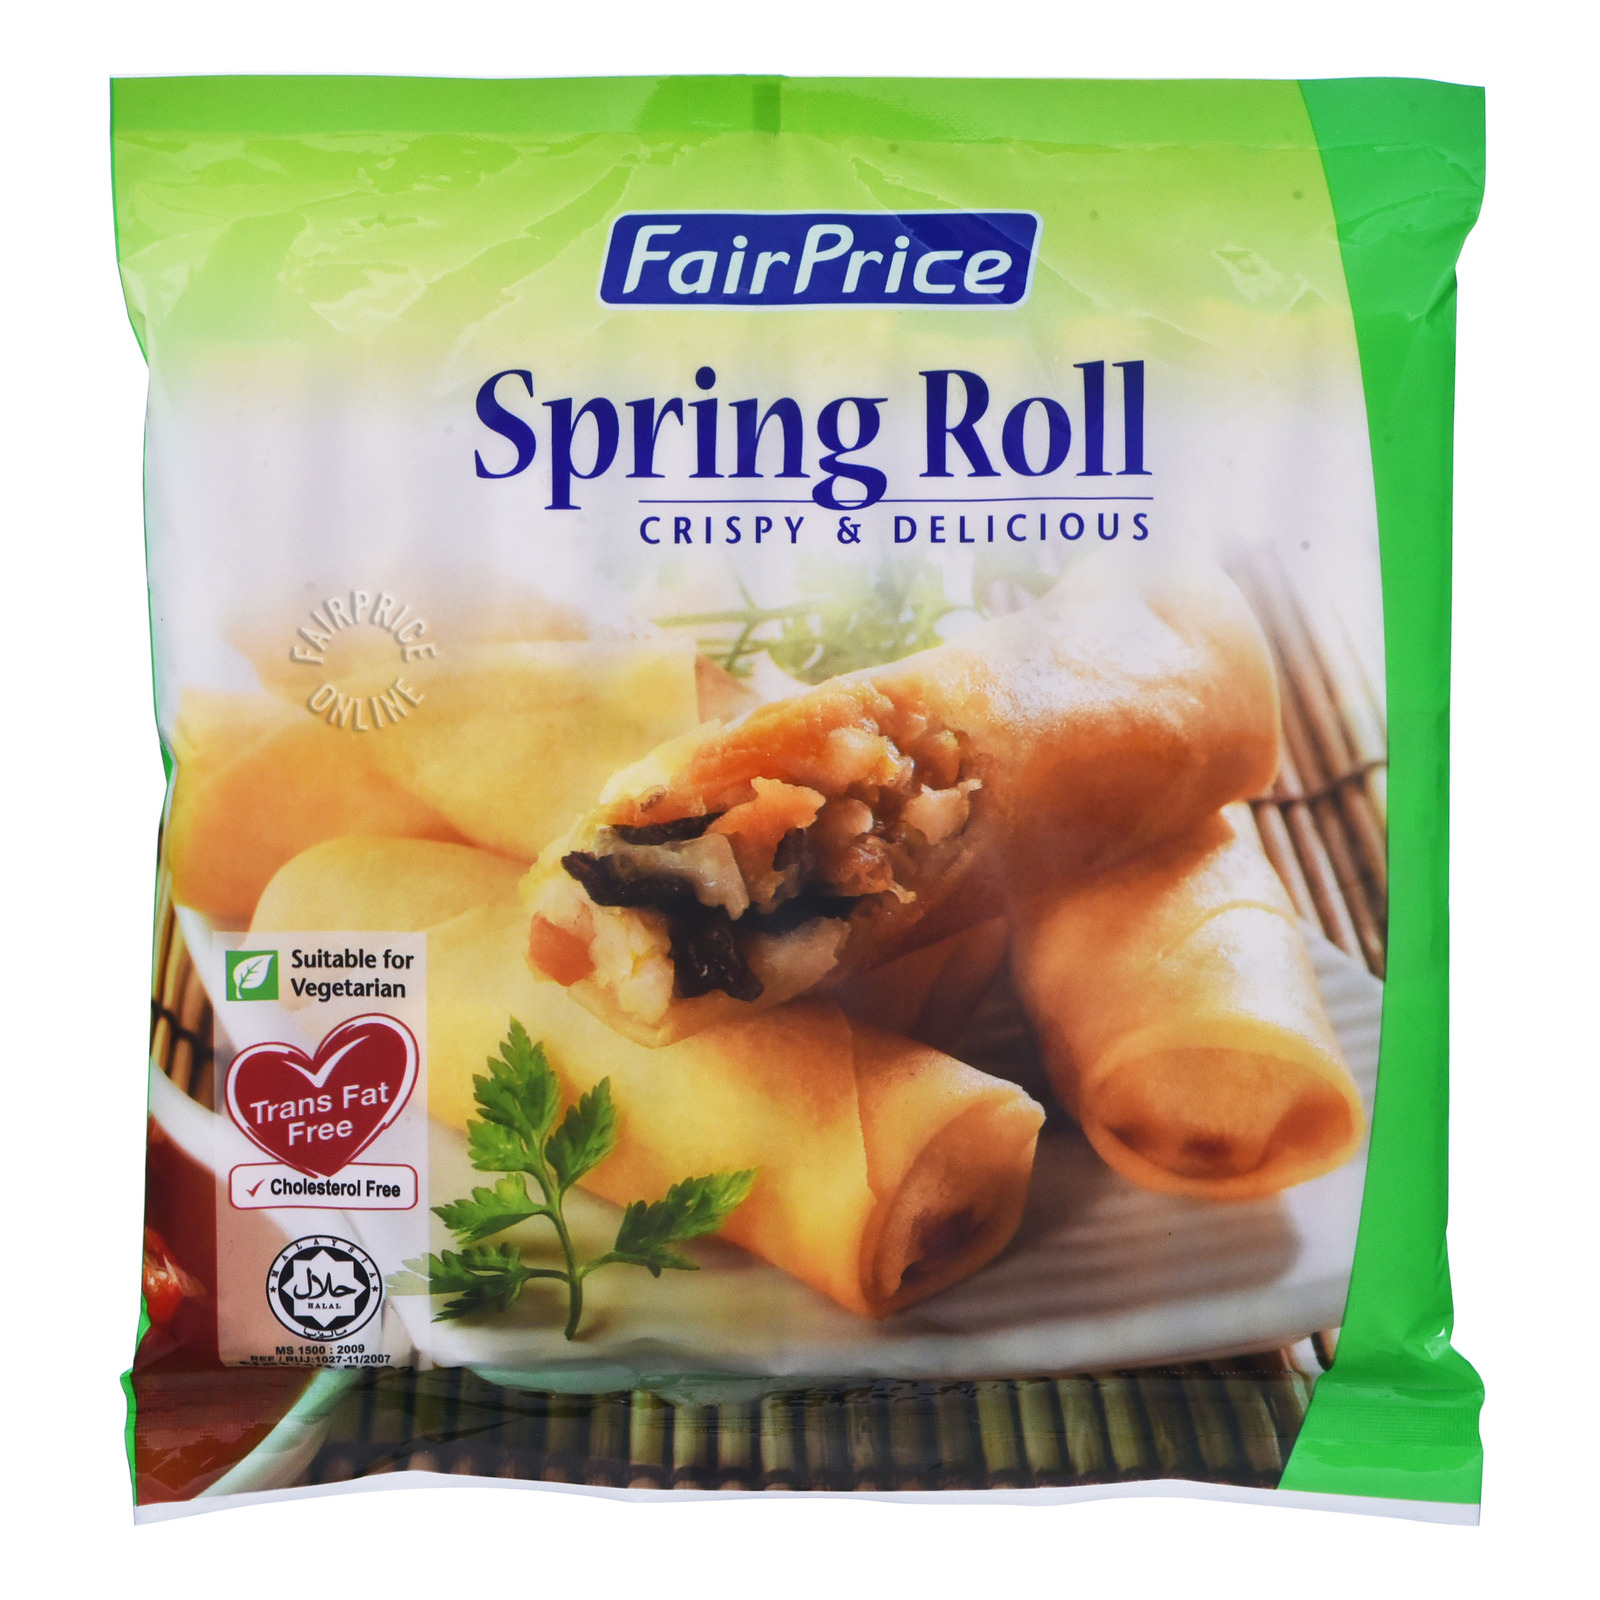 FairPrice Frozen Spring Roll